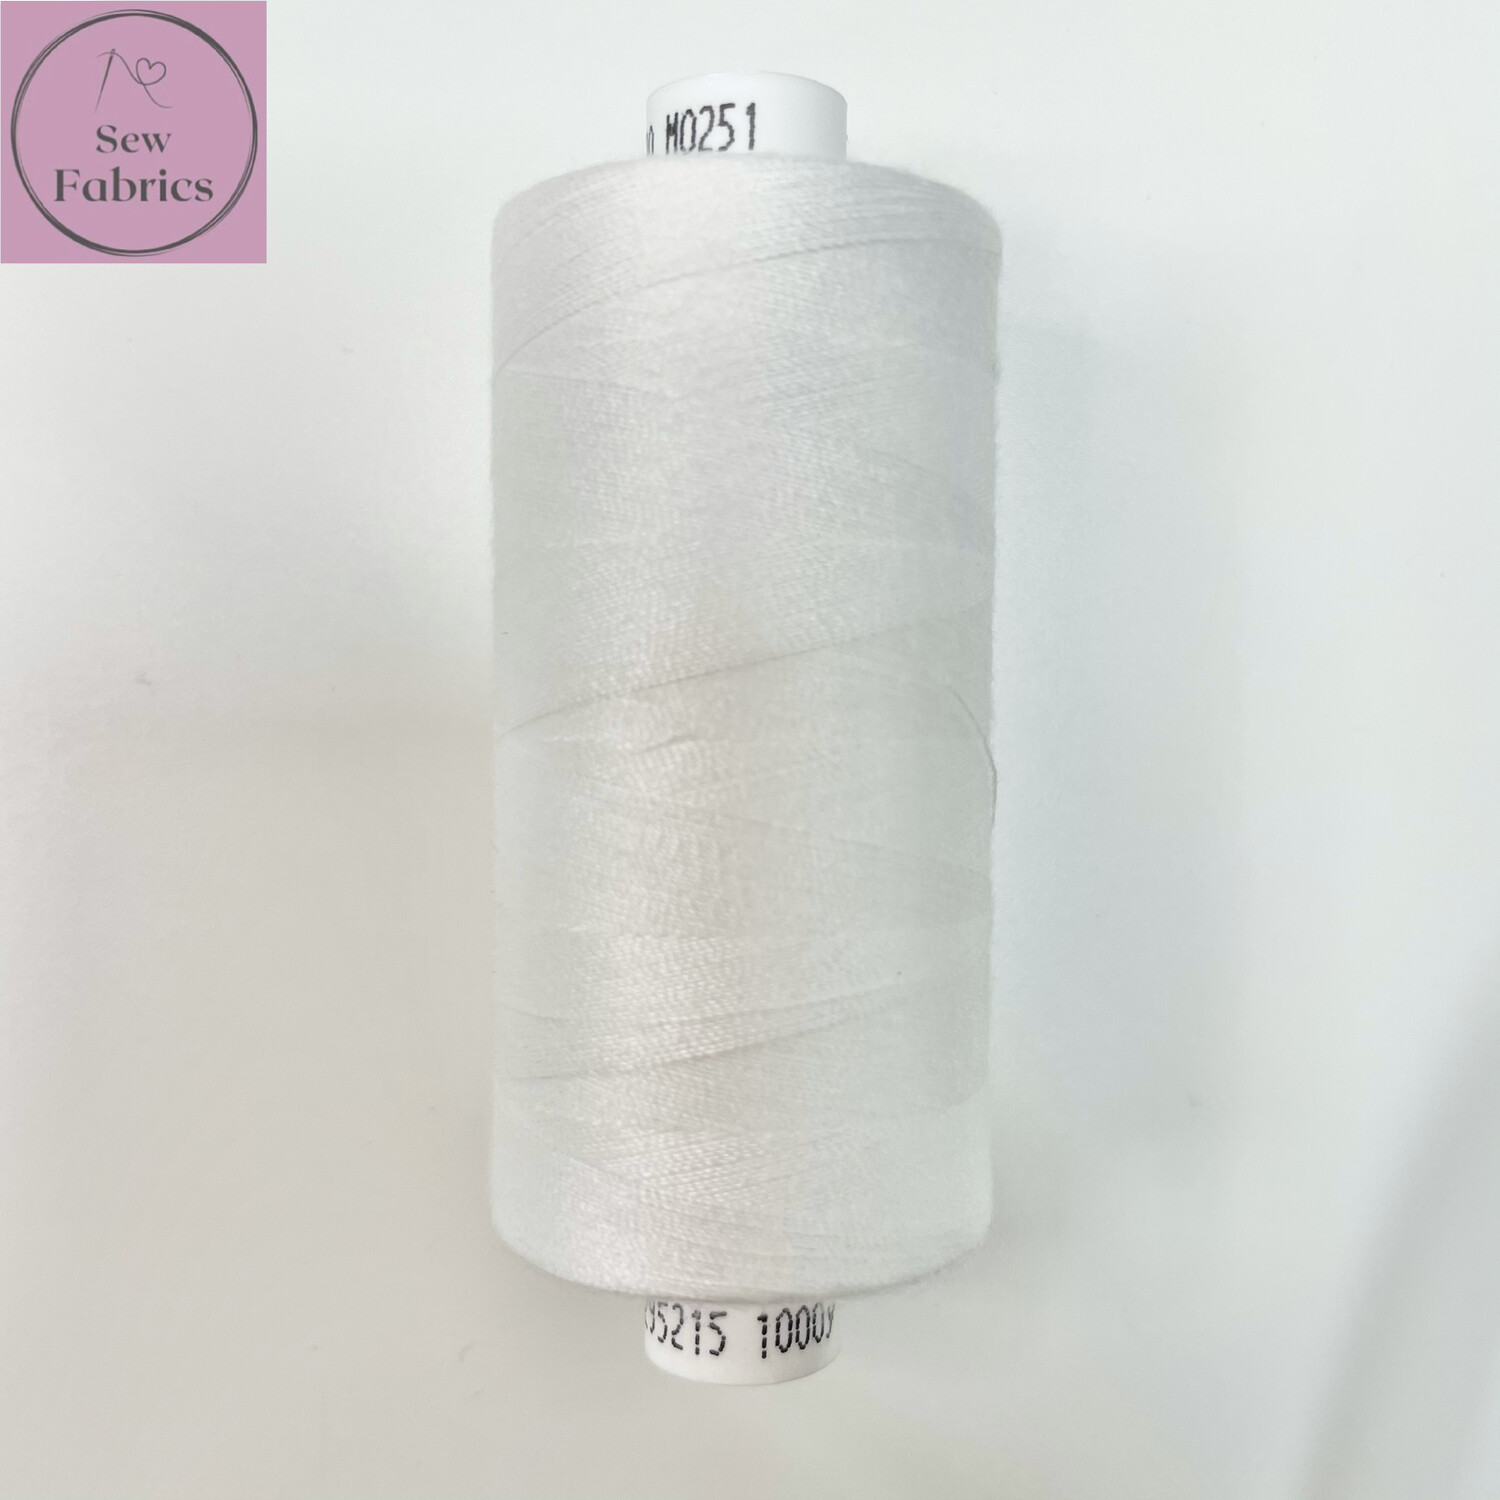 1 x 1000y Coats Moon Thread - Off White M251